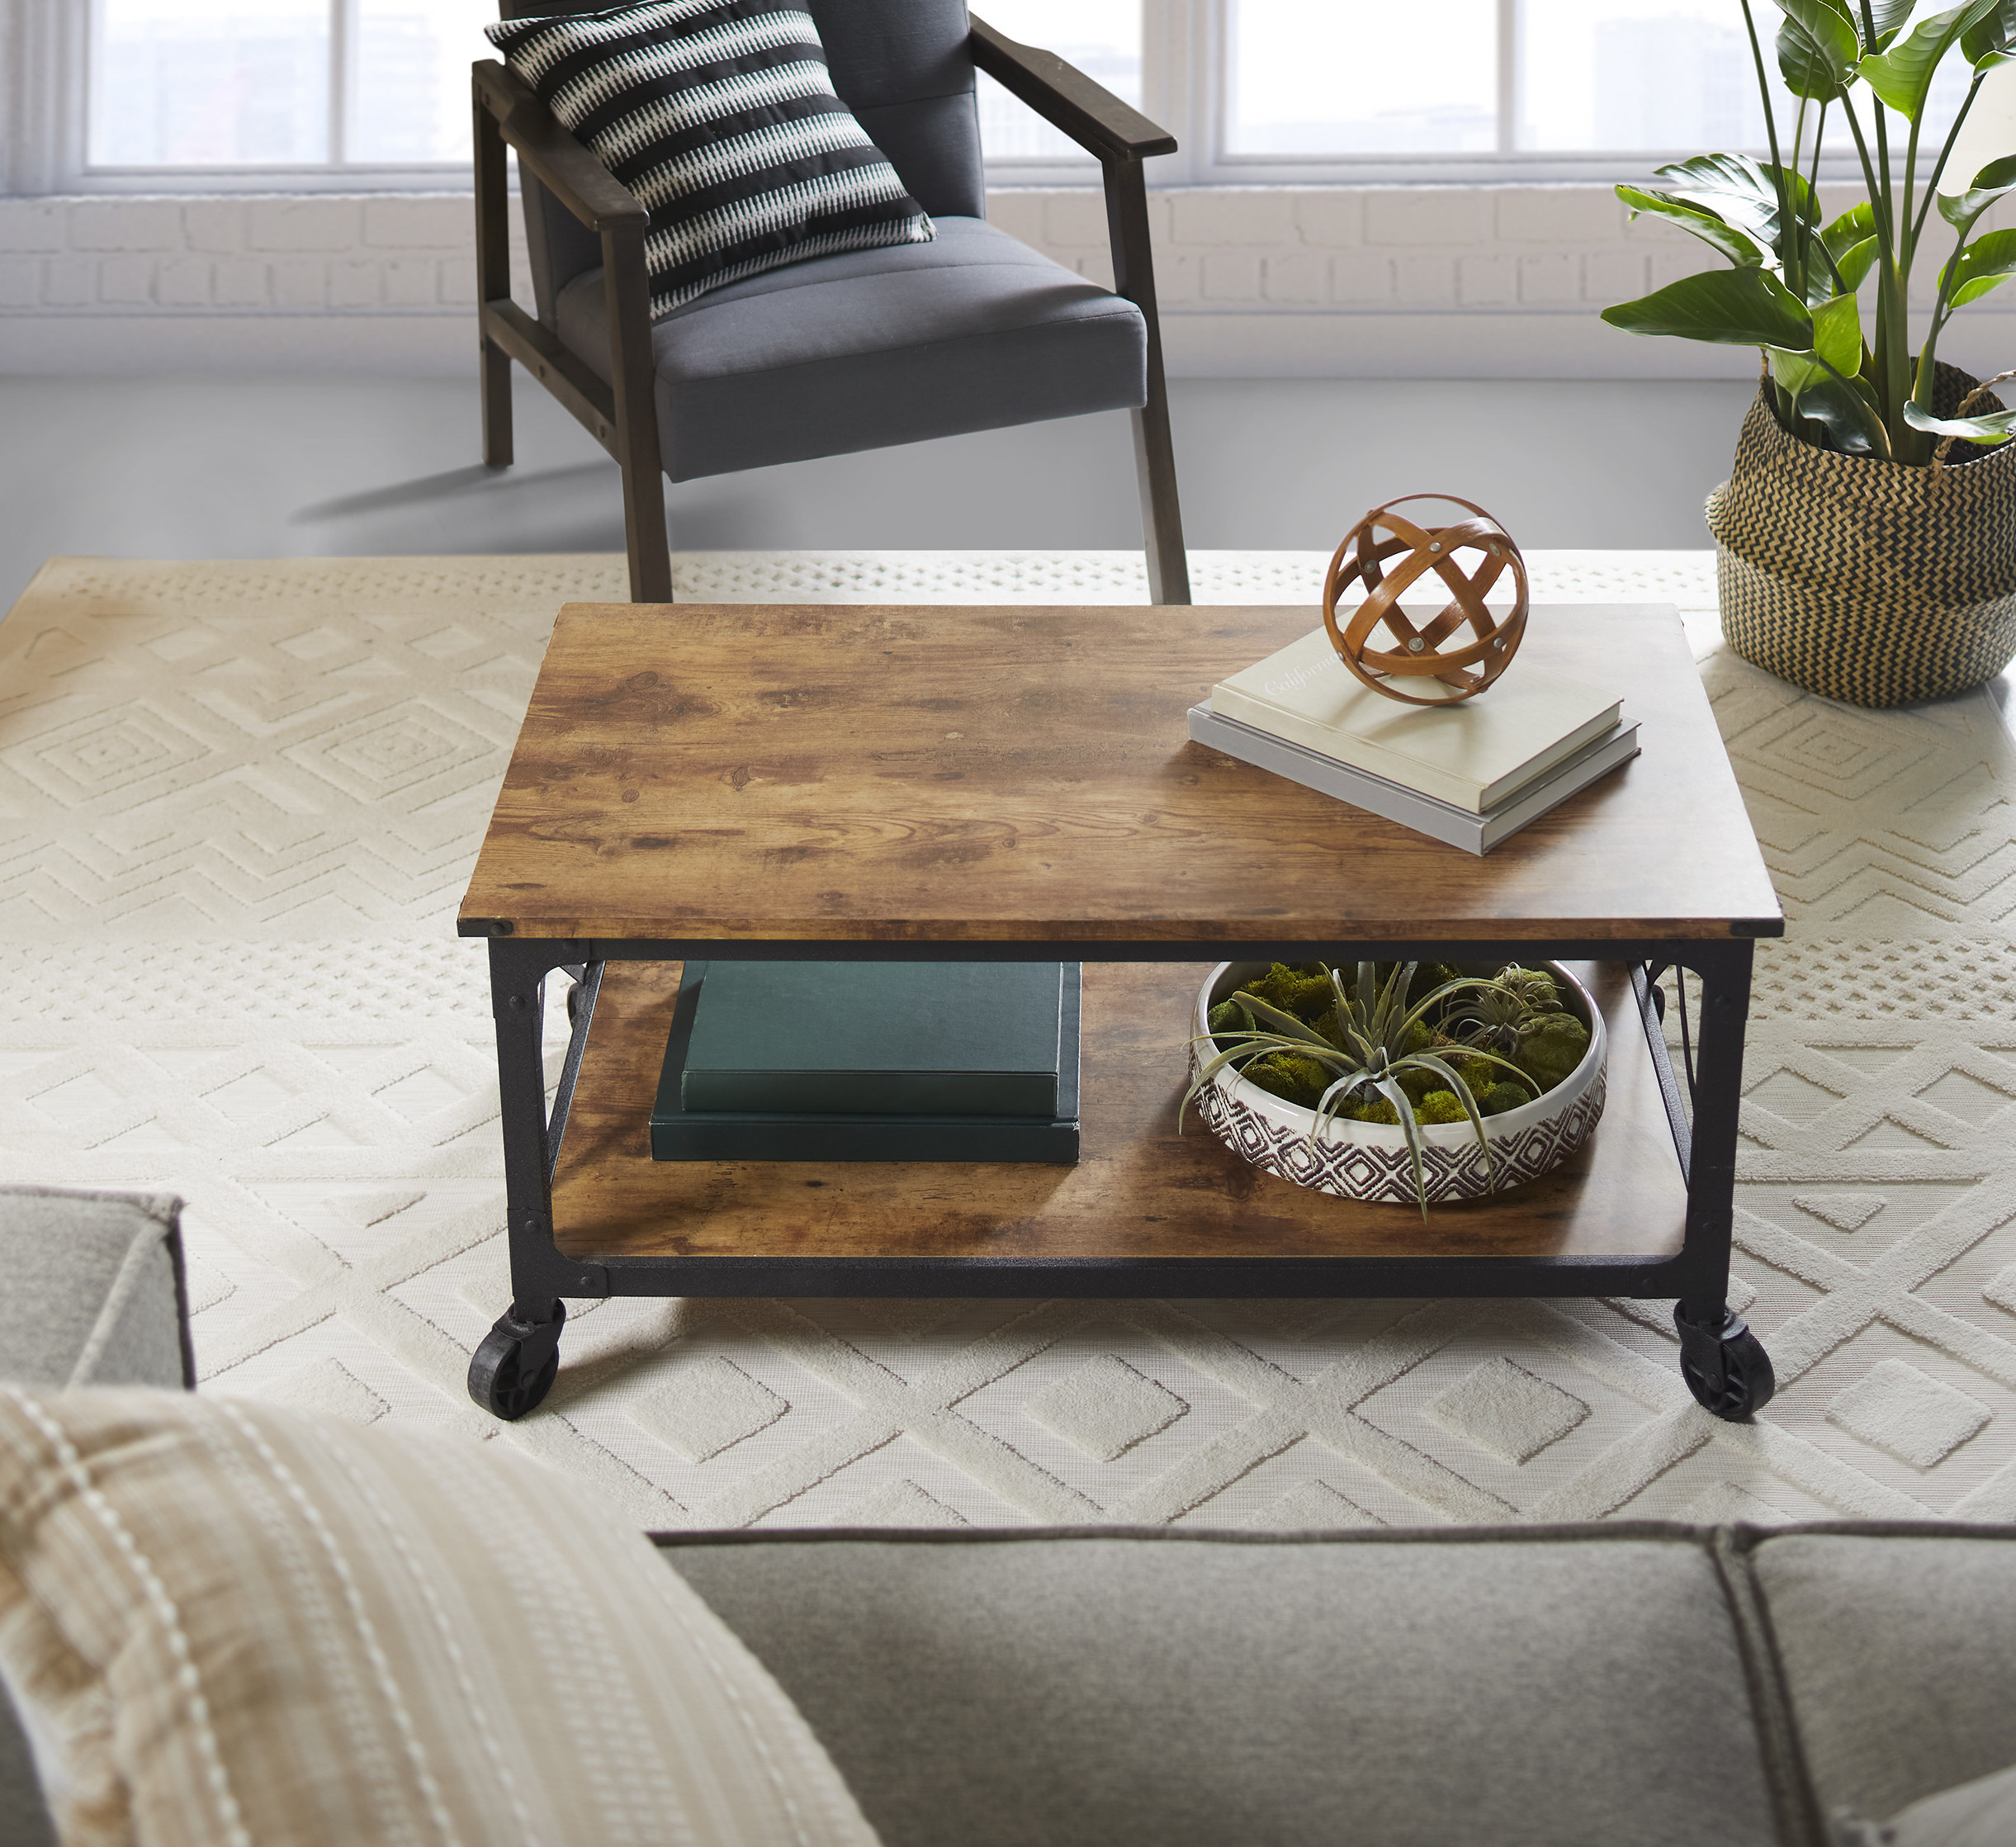 The dark wood coffee table in a living room